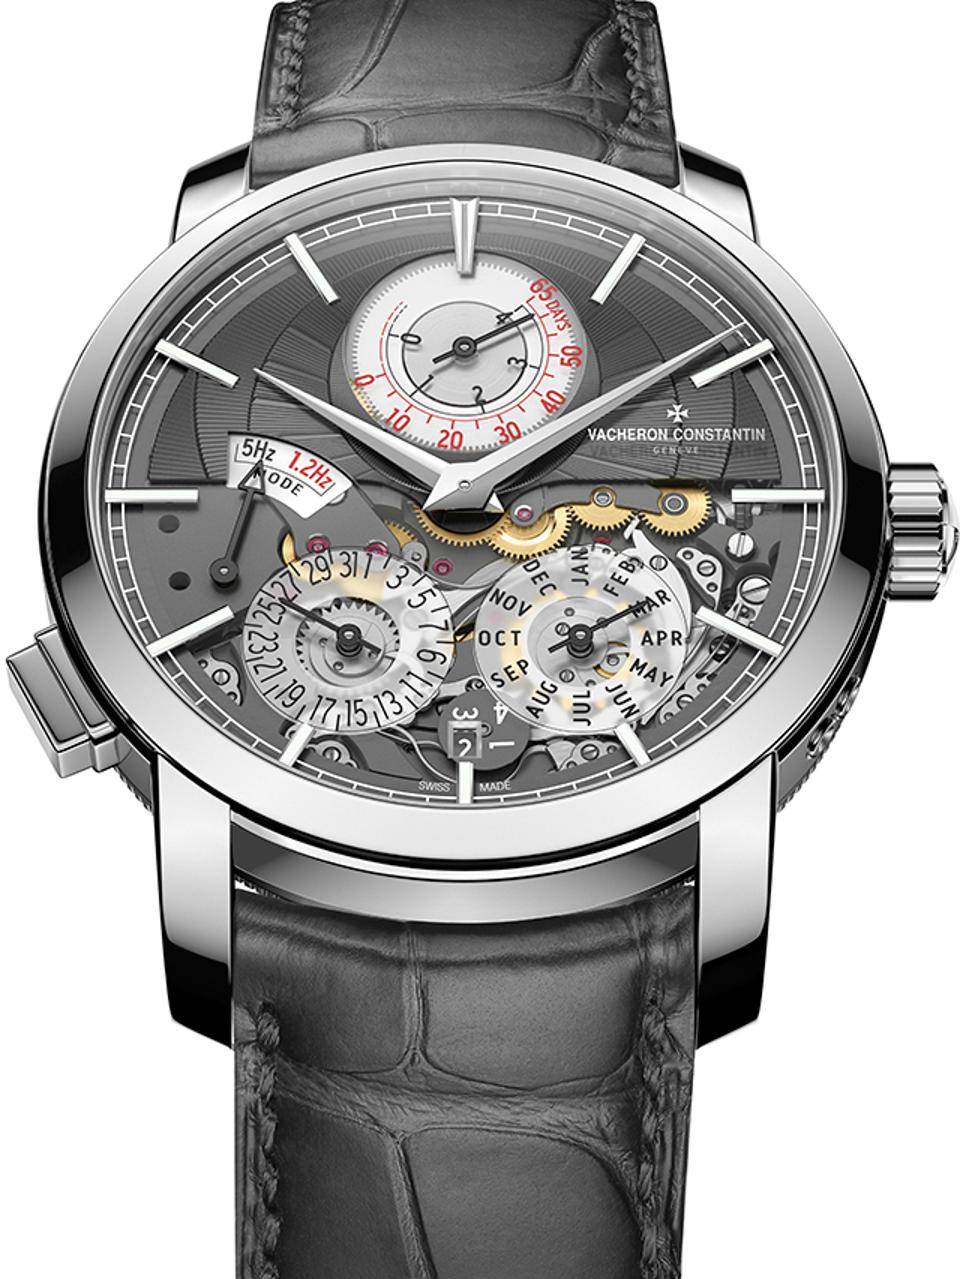 Vacheron Constantin won the Innovation prize for the Traditionnelle Twin Beat perpetual calendar, with a proprietary dual-frequency movement that enables a 65-day power reserve.